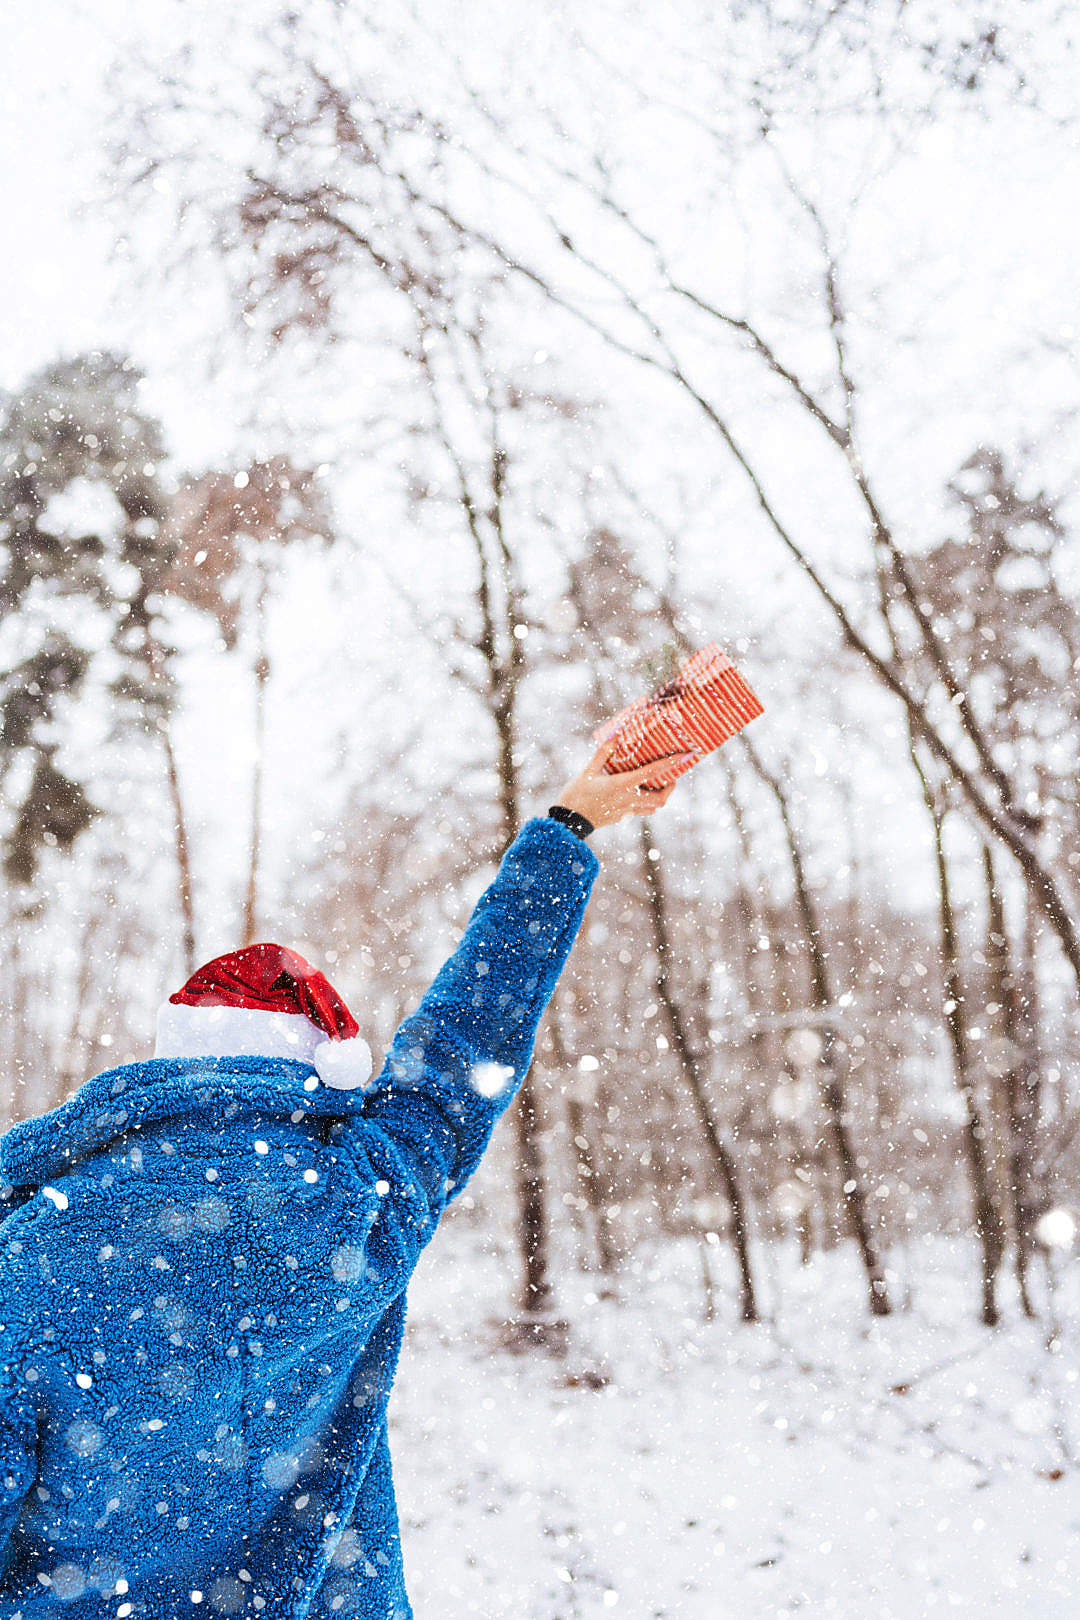 Download Woman Holding a Gift in a Snowy Landscape FREE Stock Photo